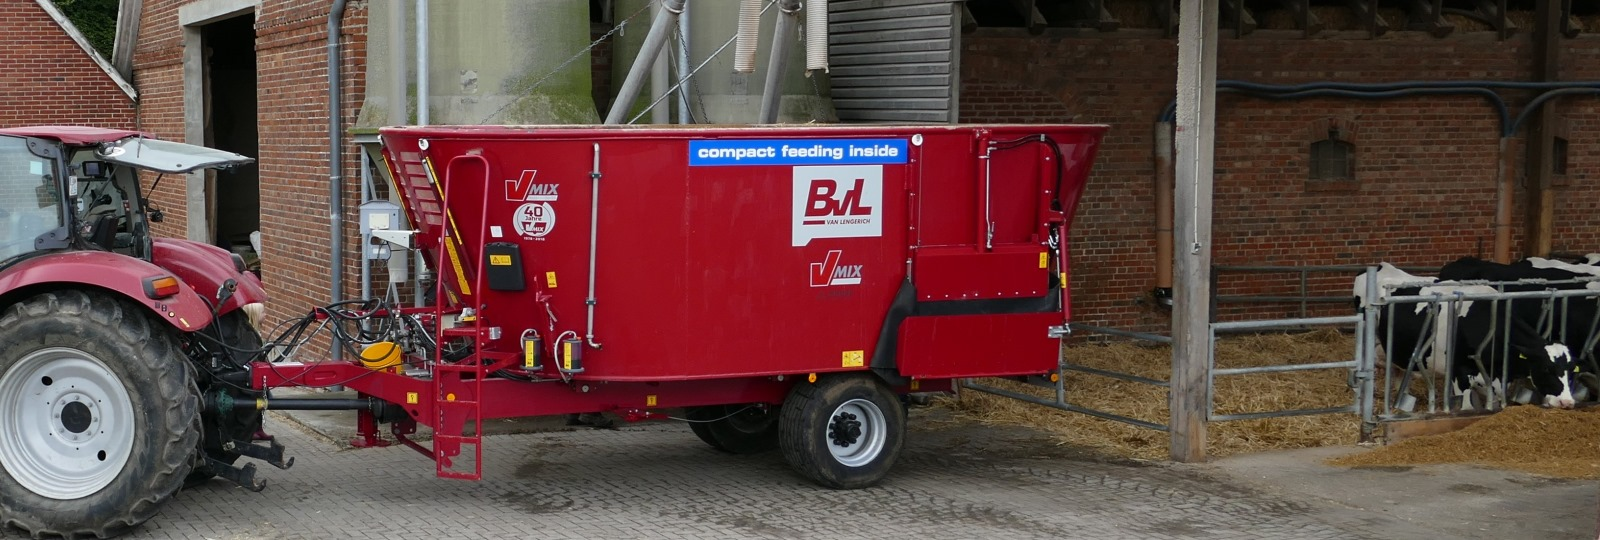 Compact Feeding Plus Package available for BvL mixer wagons